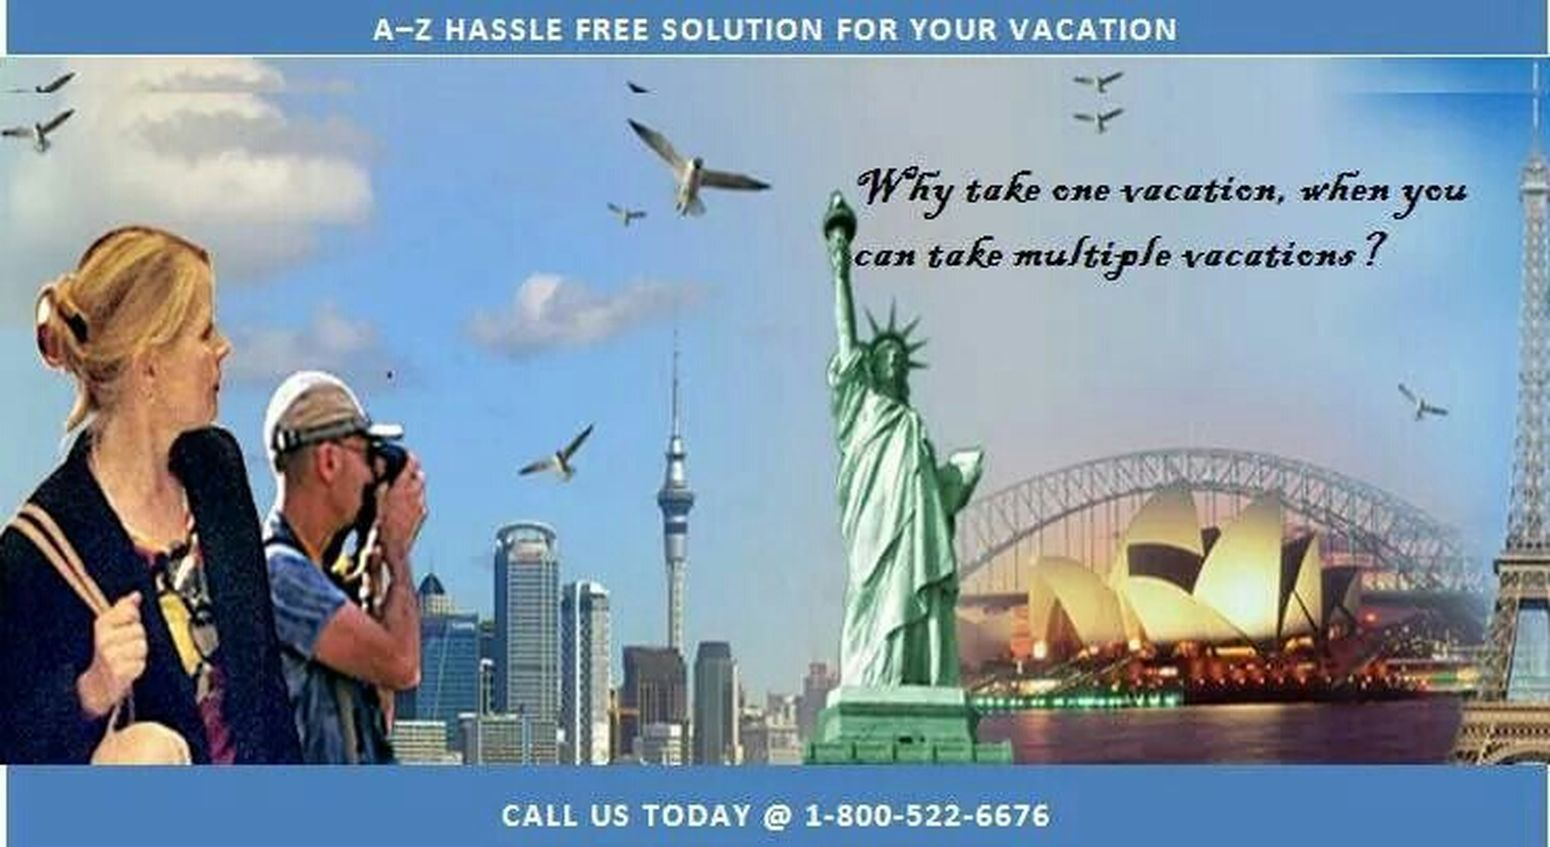 For only $99! Book now and plan your vacation at any time of th year at the same rate ! Travel Vacation2015 Lasvegas Spain♥ America Travels Lasvegasroll Affordable Price Traveling Vacation